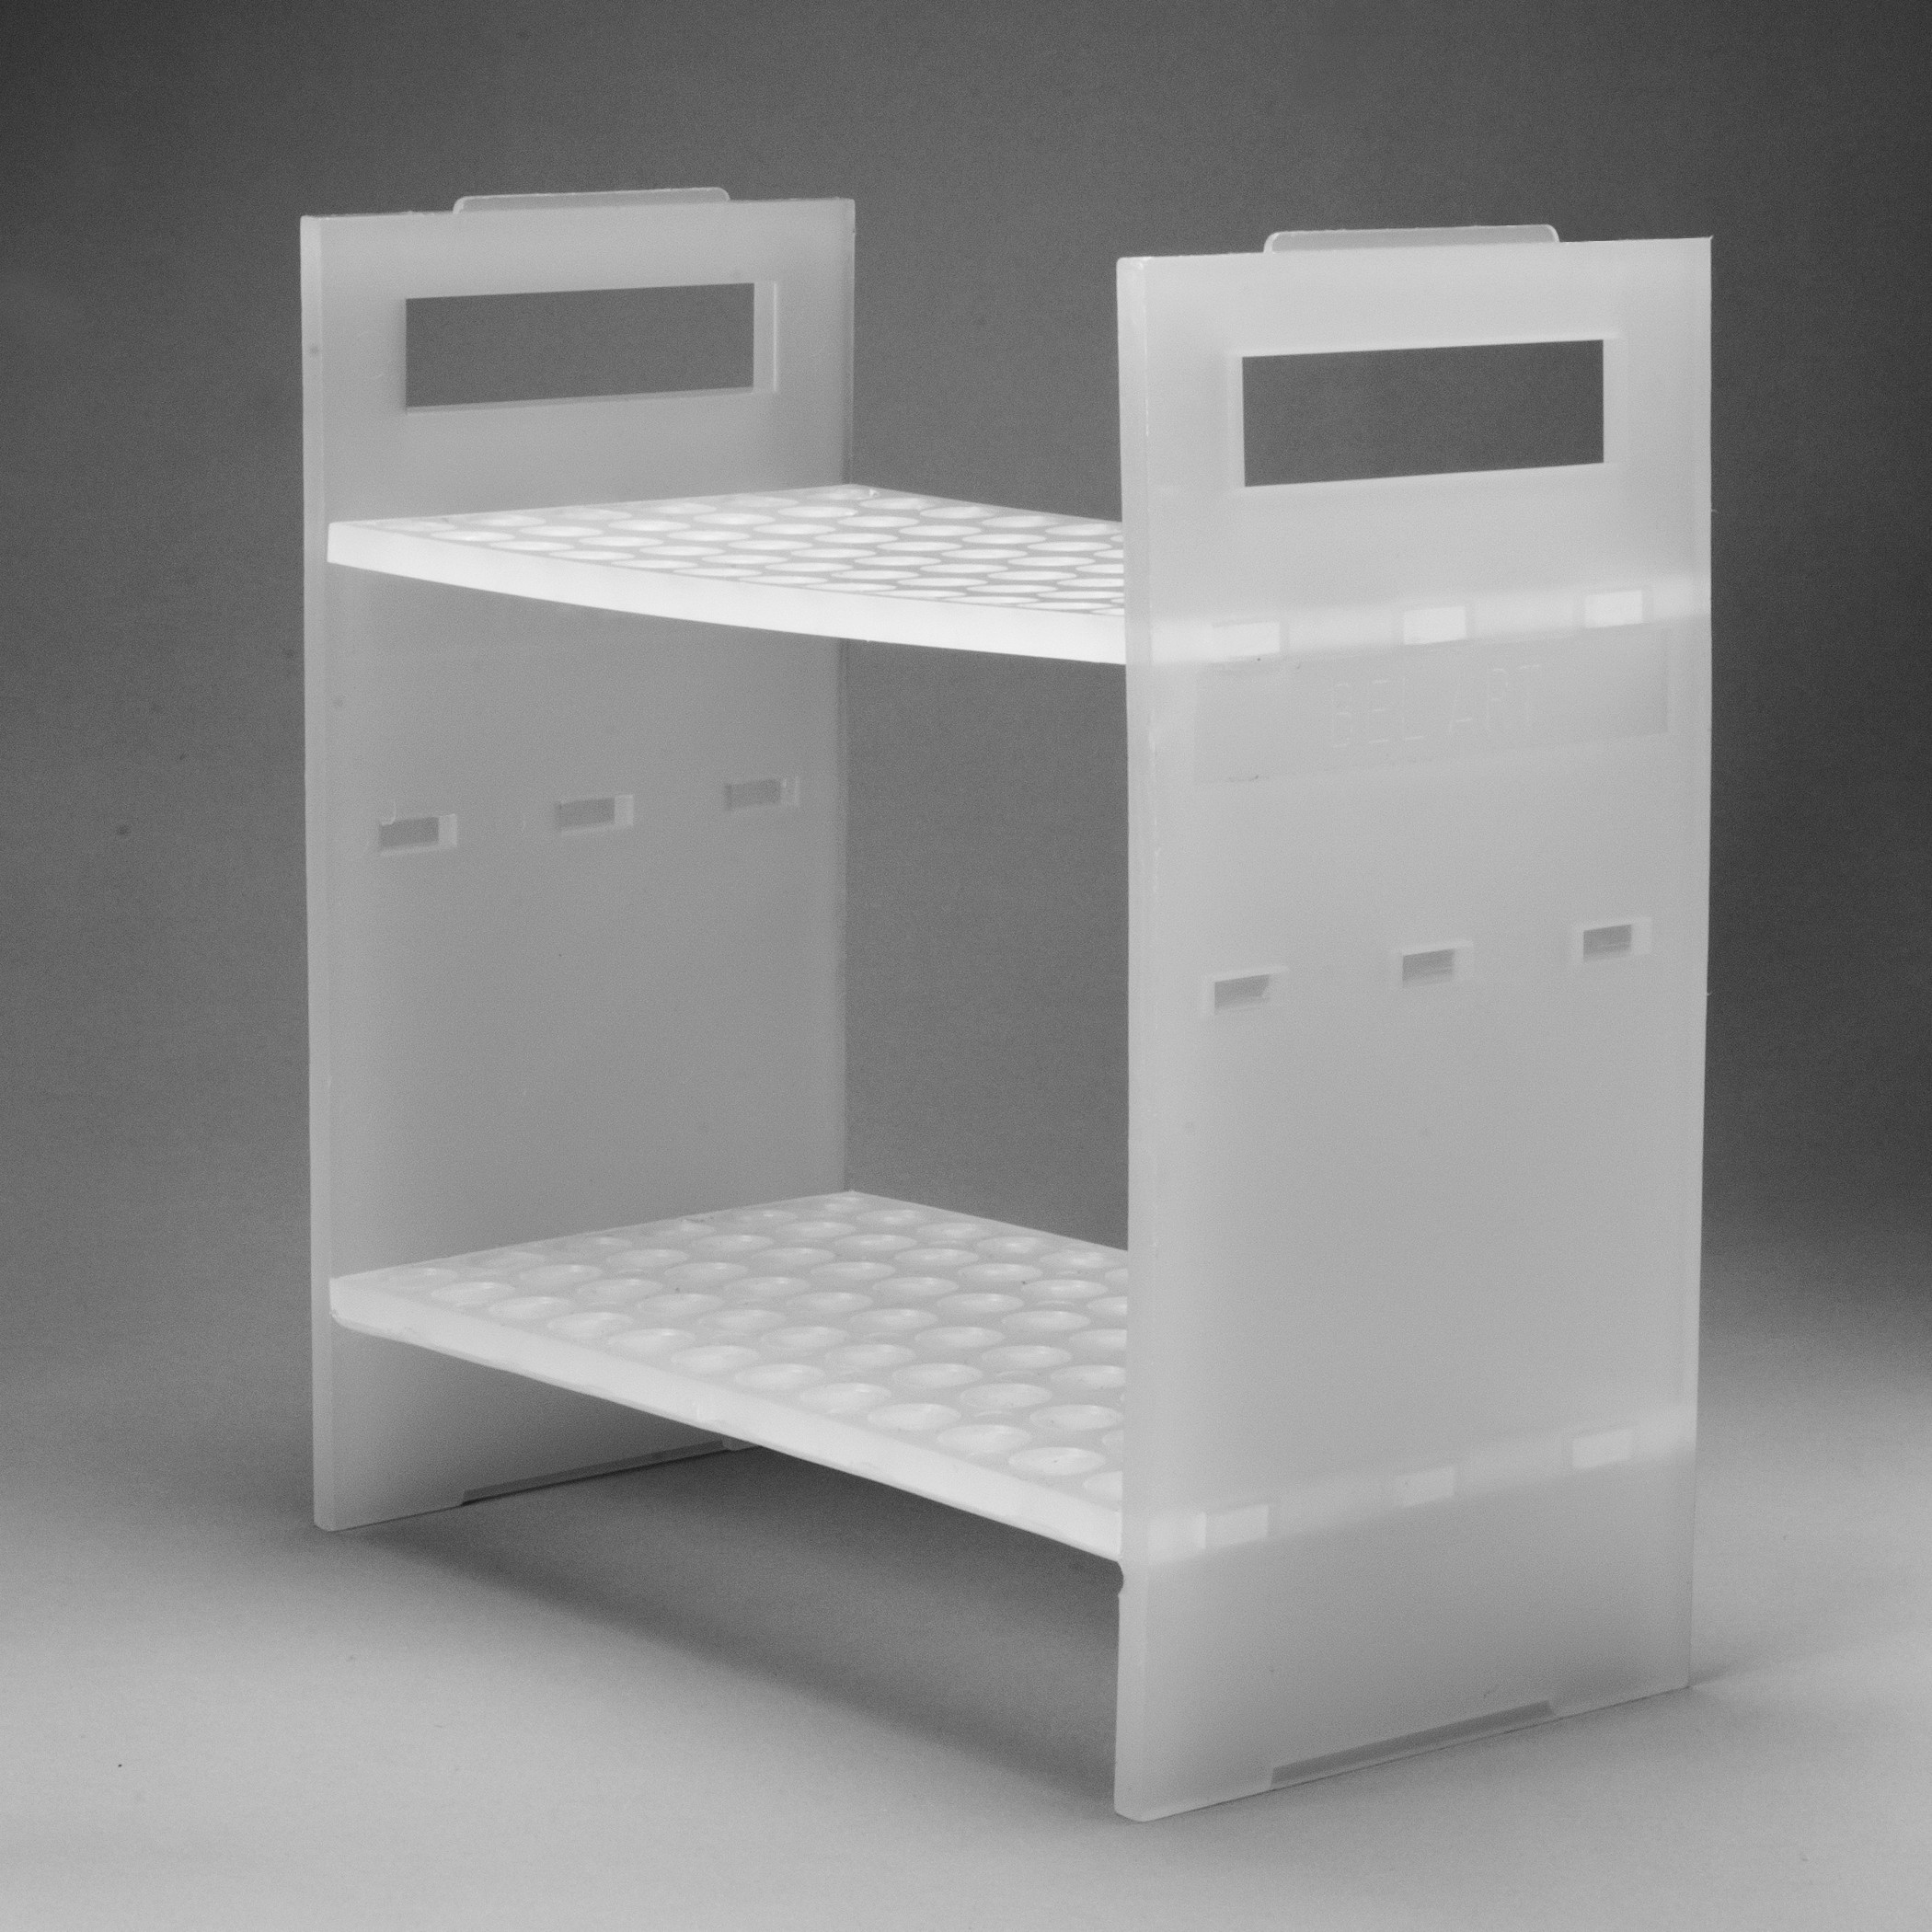 and craft australia art station units grocare metal products activity rack drying shelves